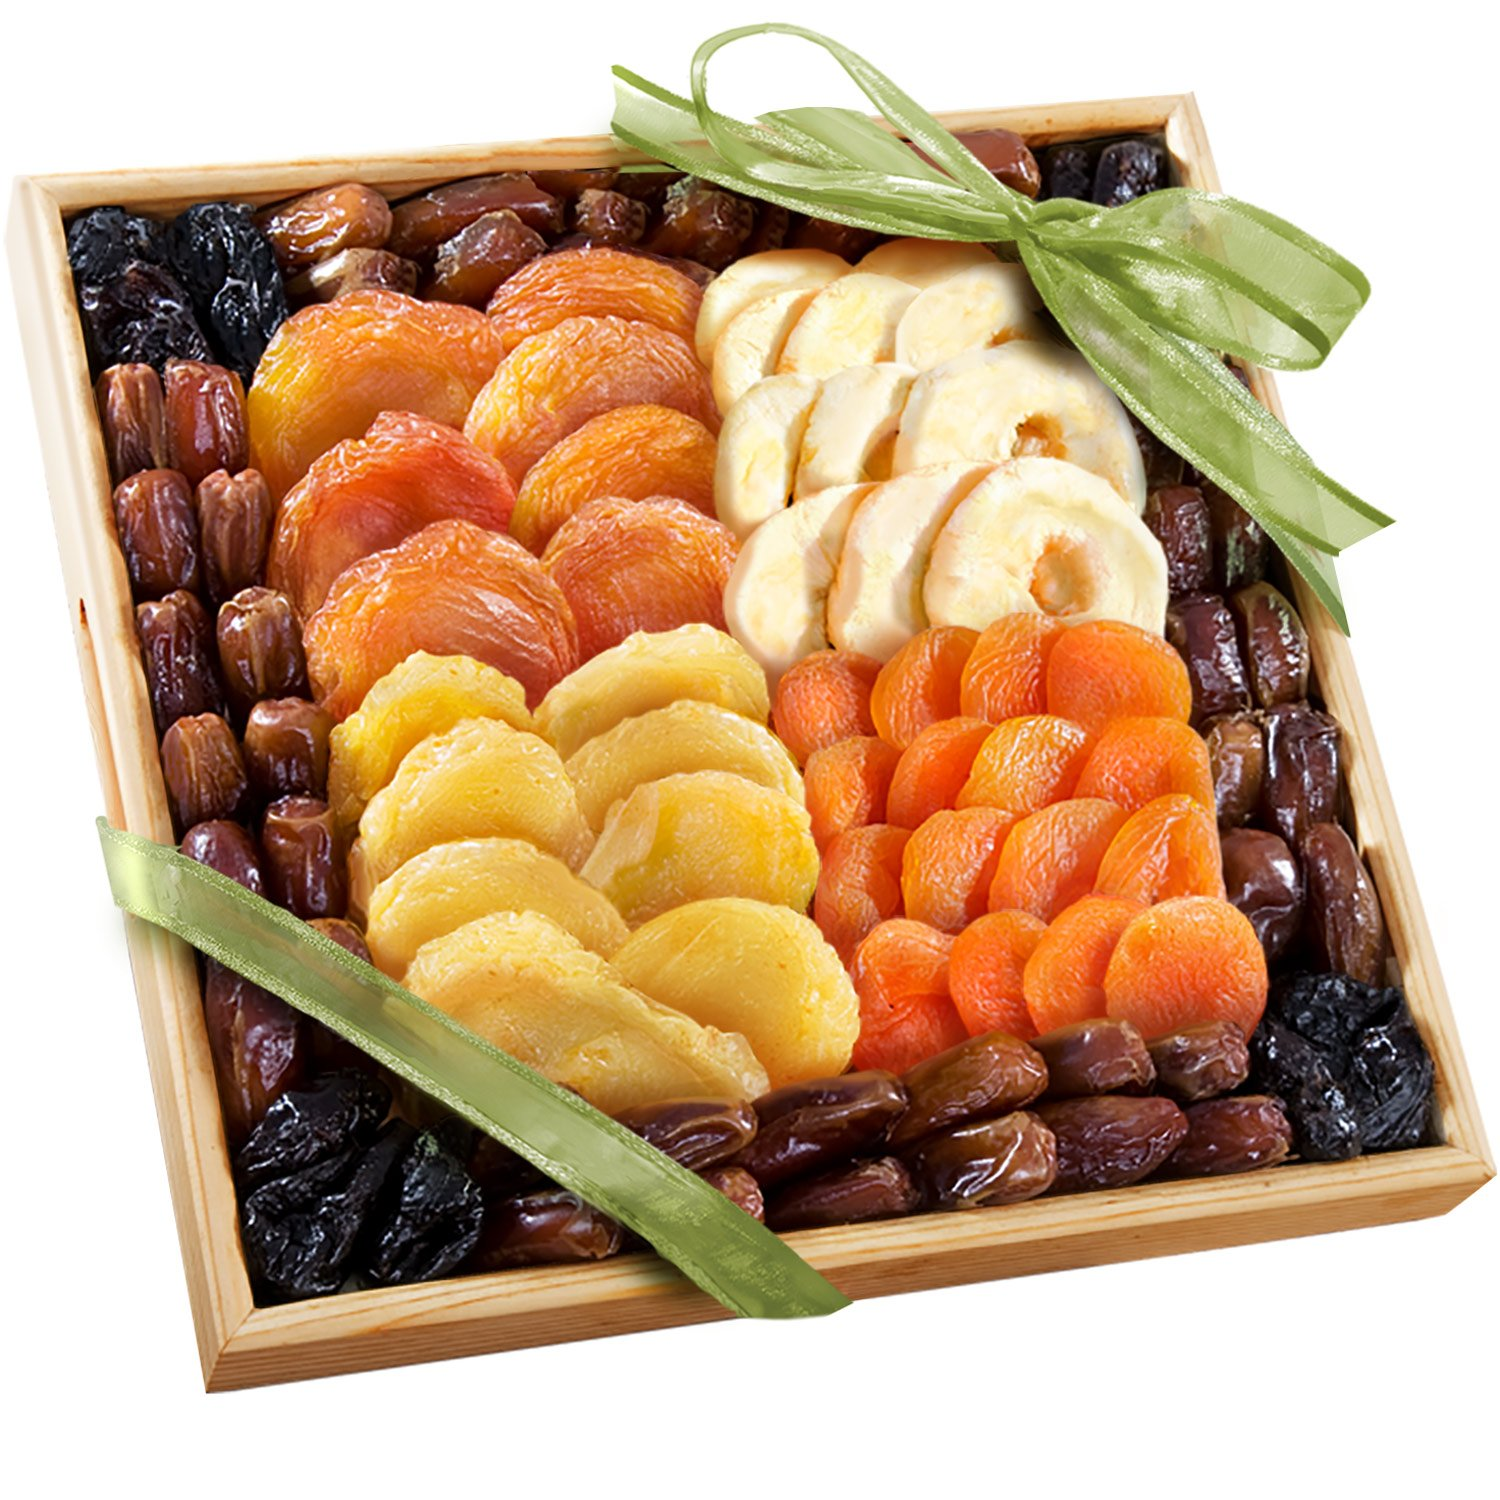 Amazon Com Golden State Fruit Mosaic Dried Fruit Tray Gift Gourmet Fruit Gifts Grocery Gourmet Food